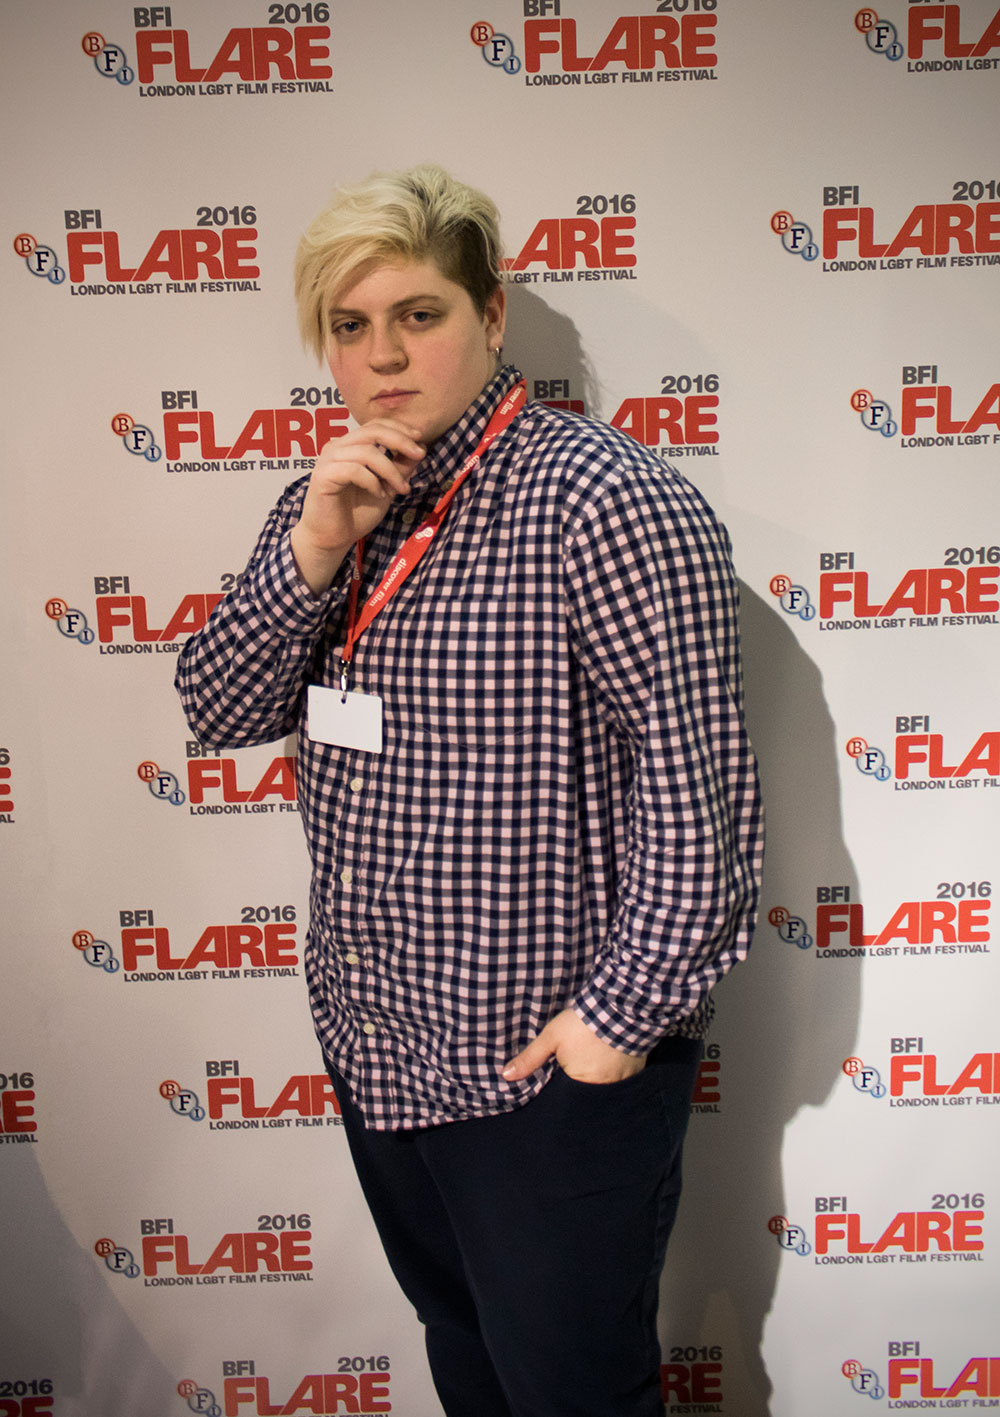 A person posing for a picture at the London LGBT Film Festival.